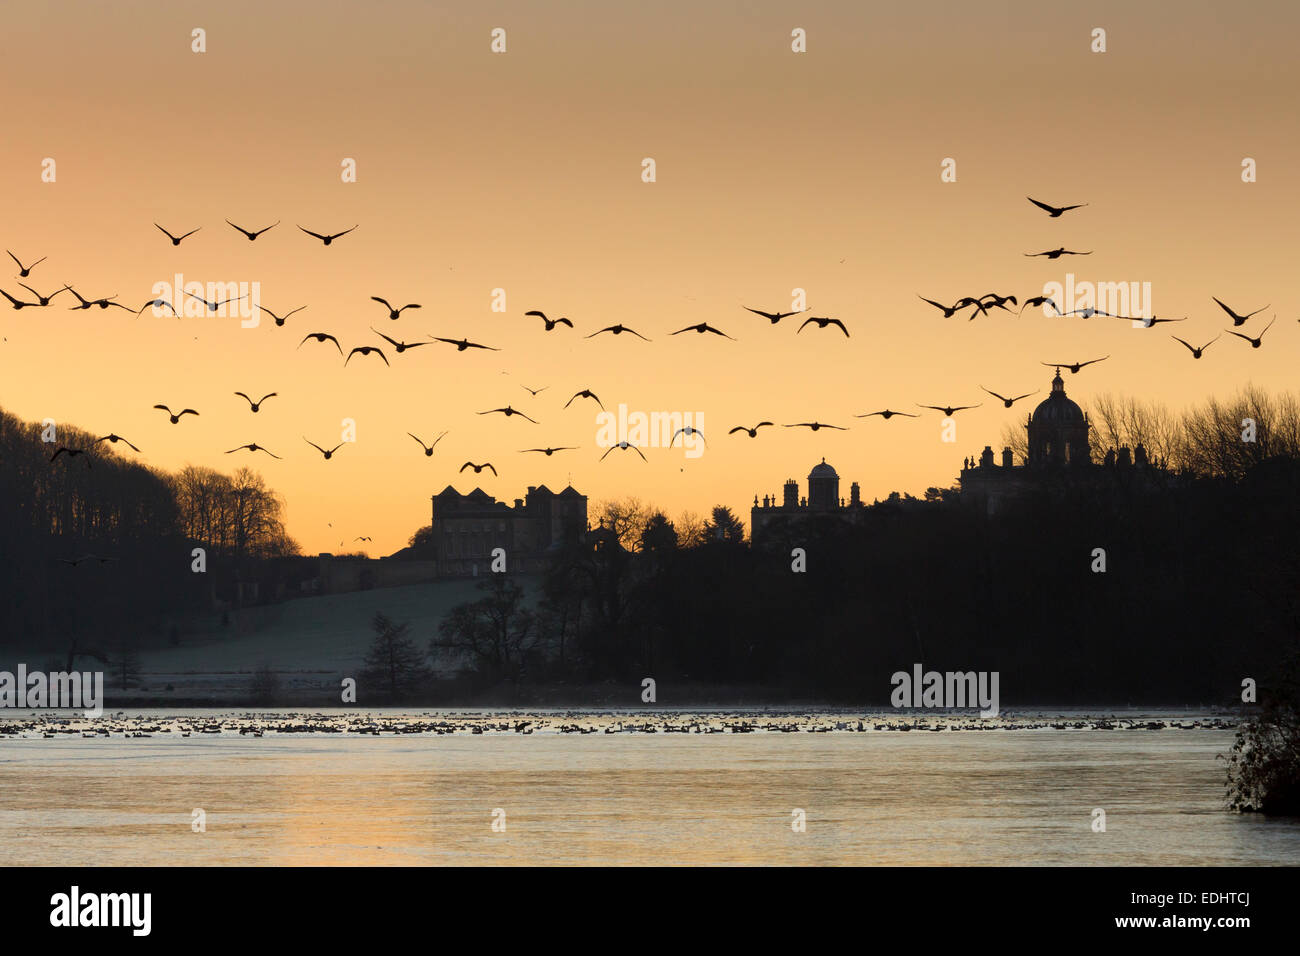 Geese flying over The Great Lake, Castle Howard in mid-winter, North Yorkshire, England. - Stock Image